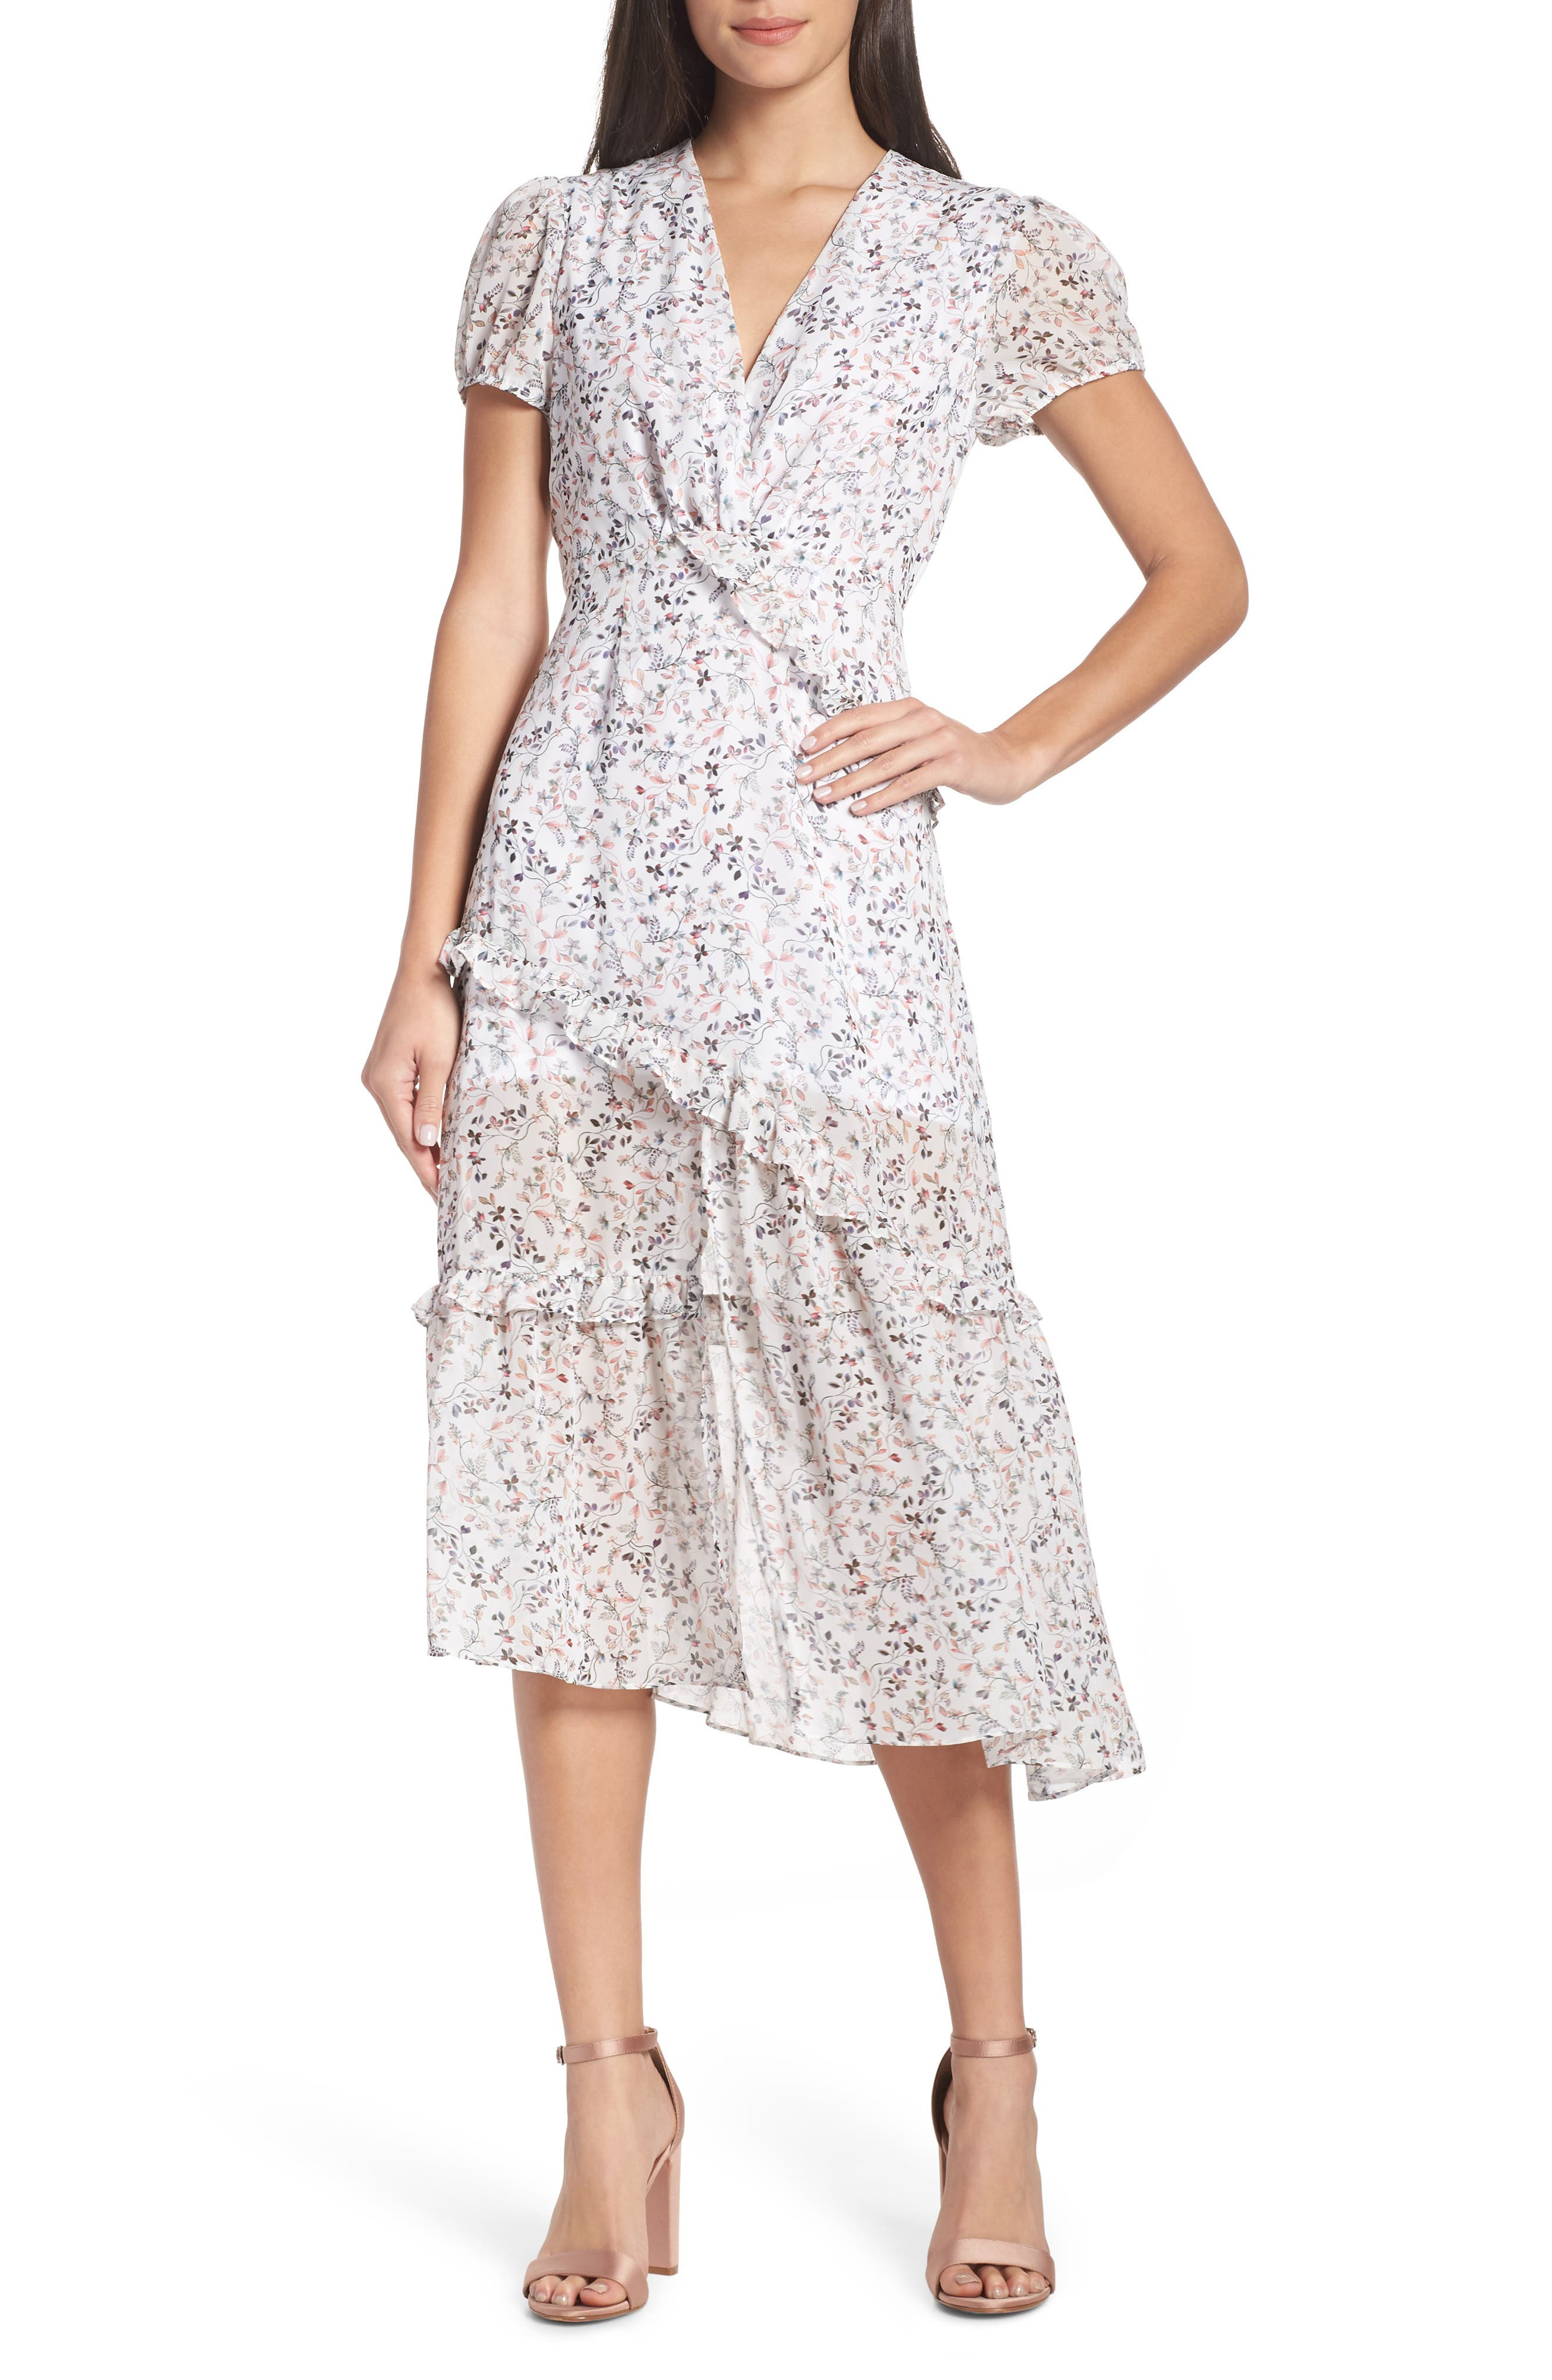 1920s Downton Abbey Dresses Womens Nsr Olivia Floral Ruffle Midi Dress $88.00 AT vintagedancer.com